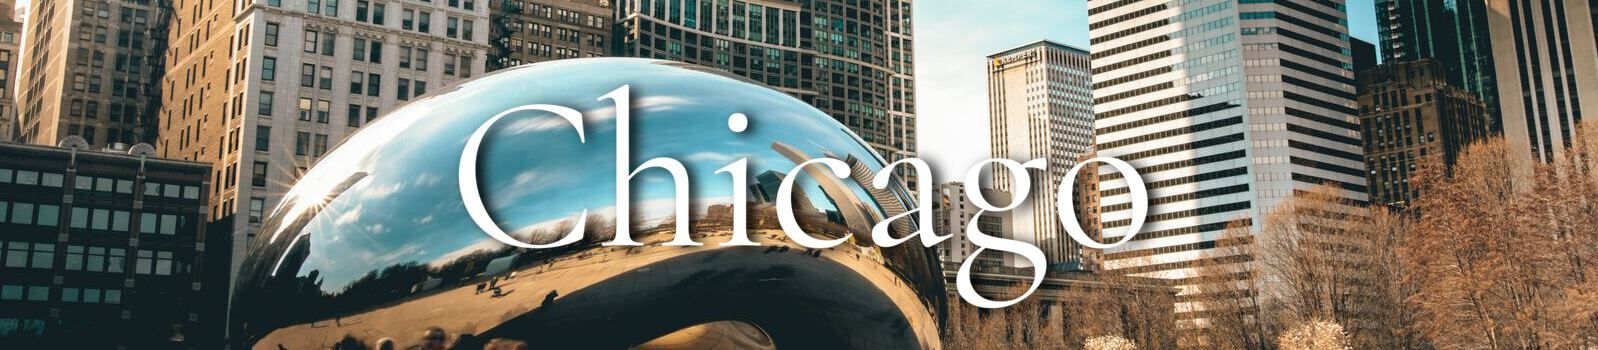 Things to Do in Chicago this Weekend Banner